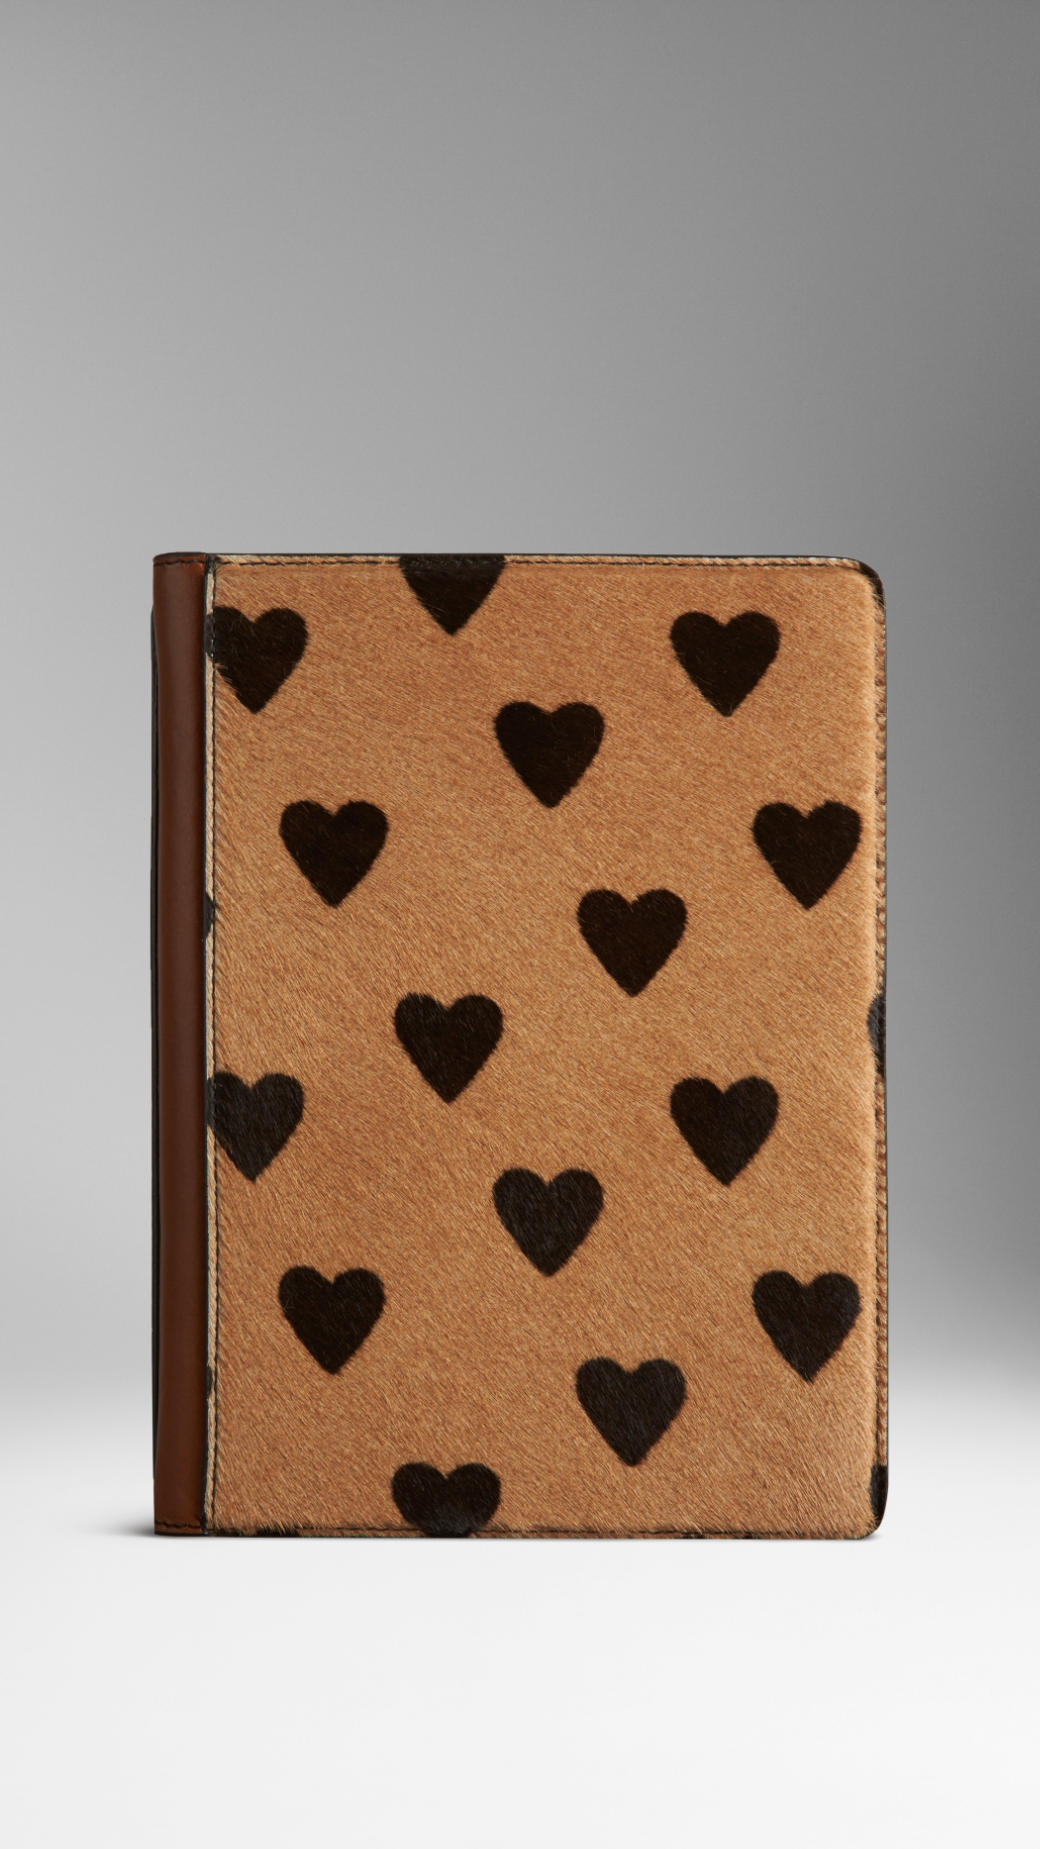 bab1c37b7a2f Lyst - Burberry Heart Print Calfskin Ipad Mini Case in Black